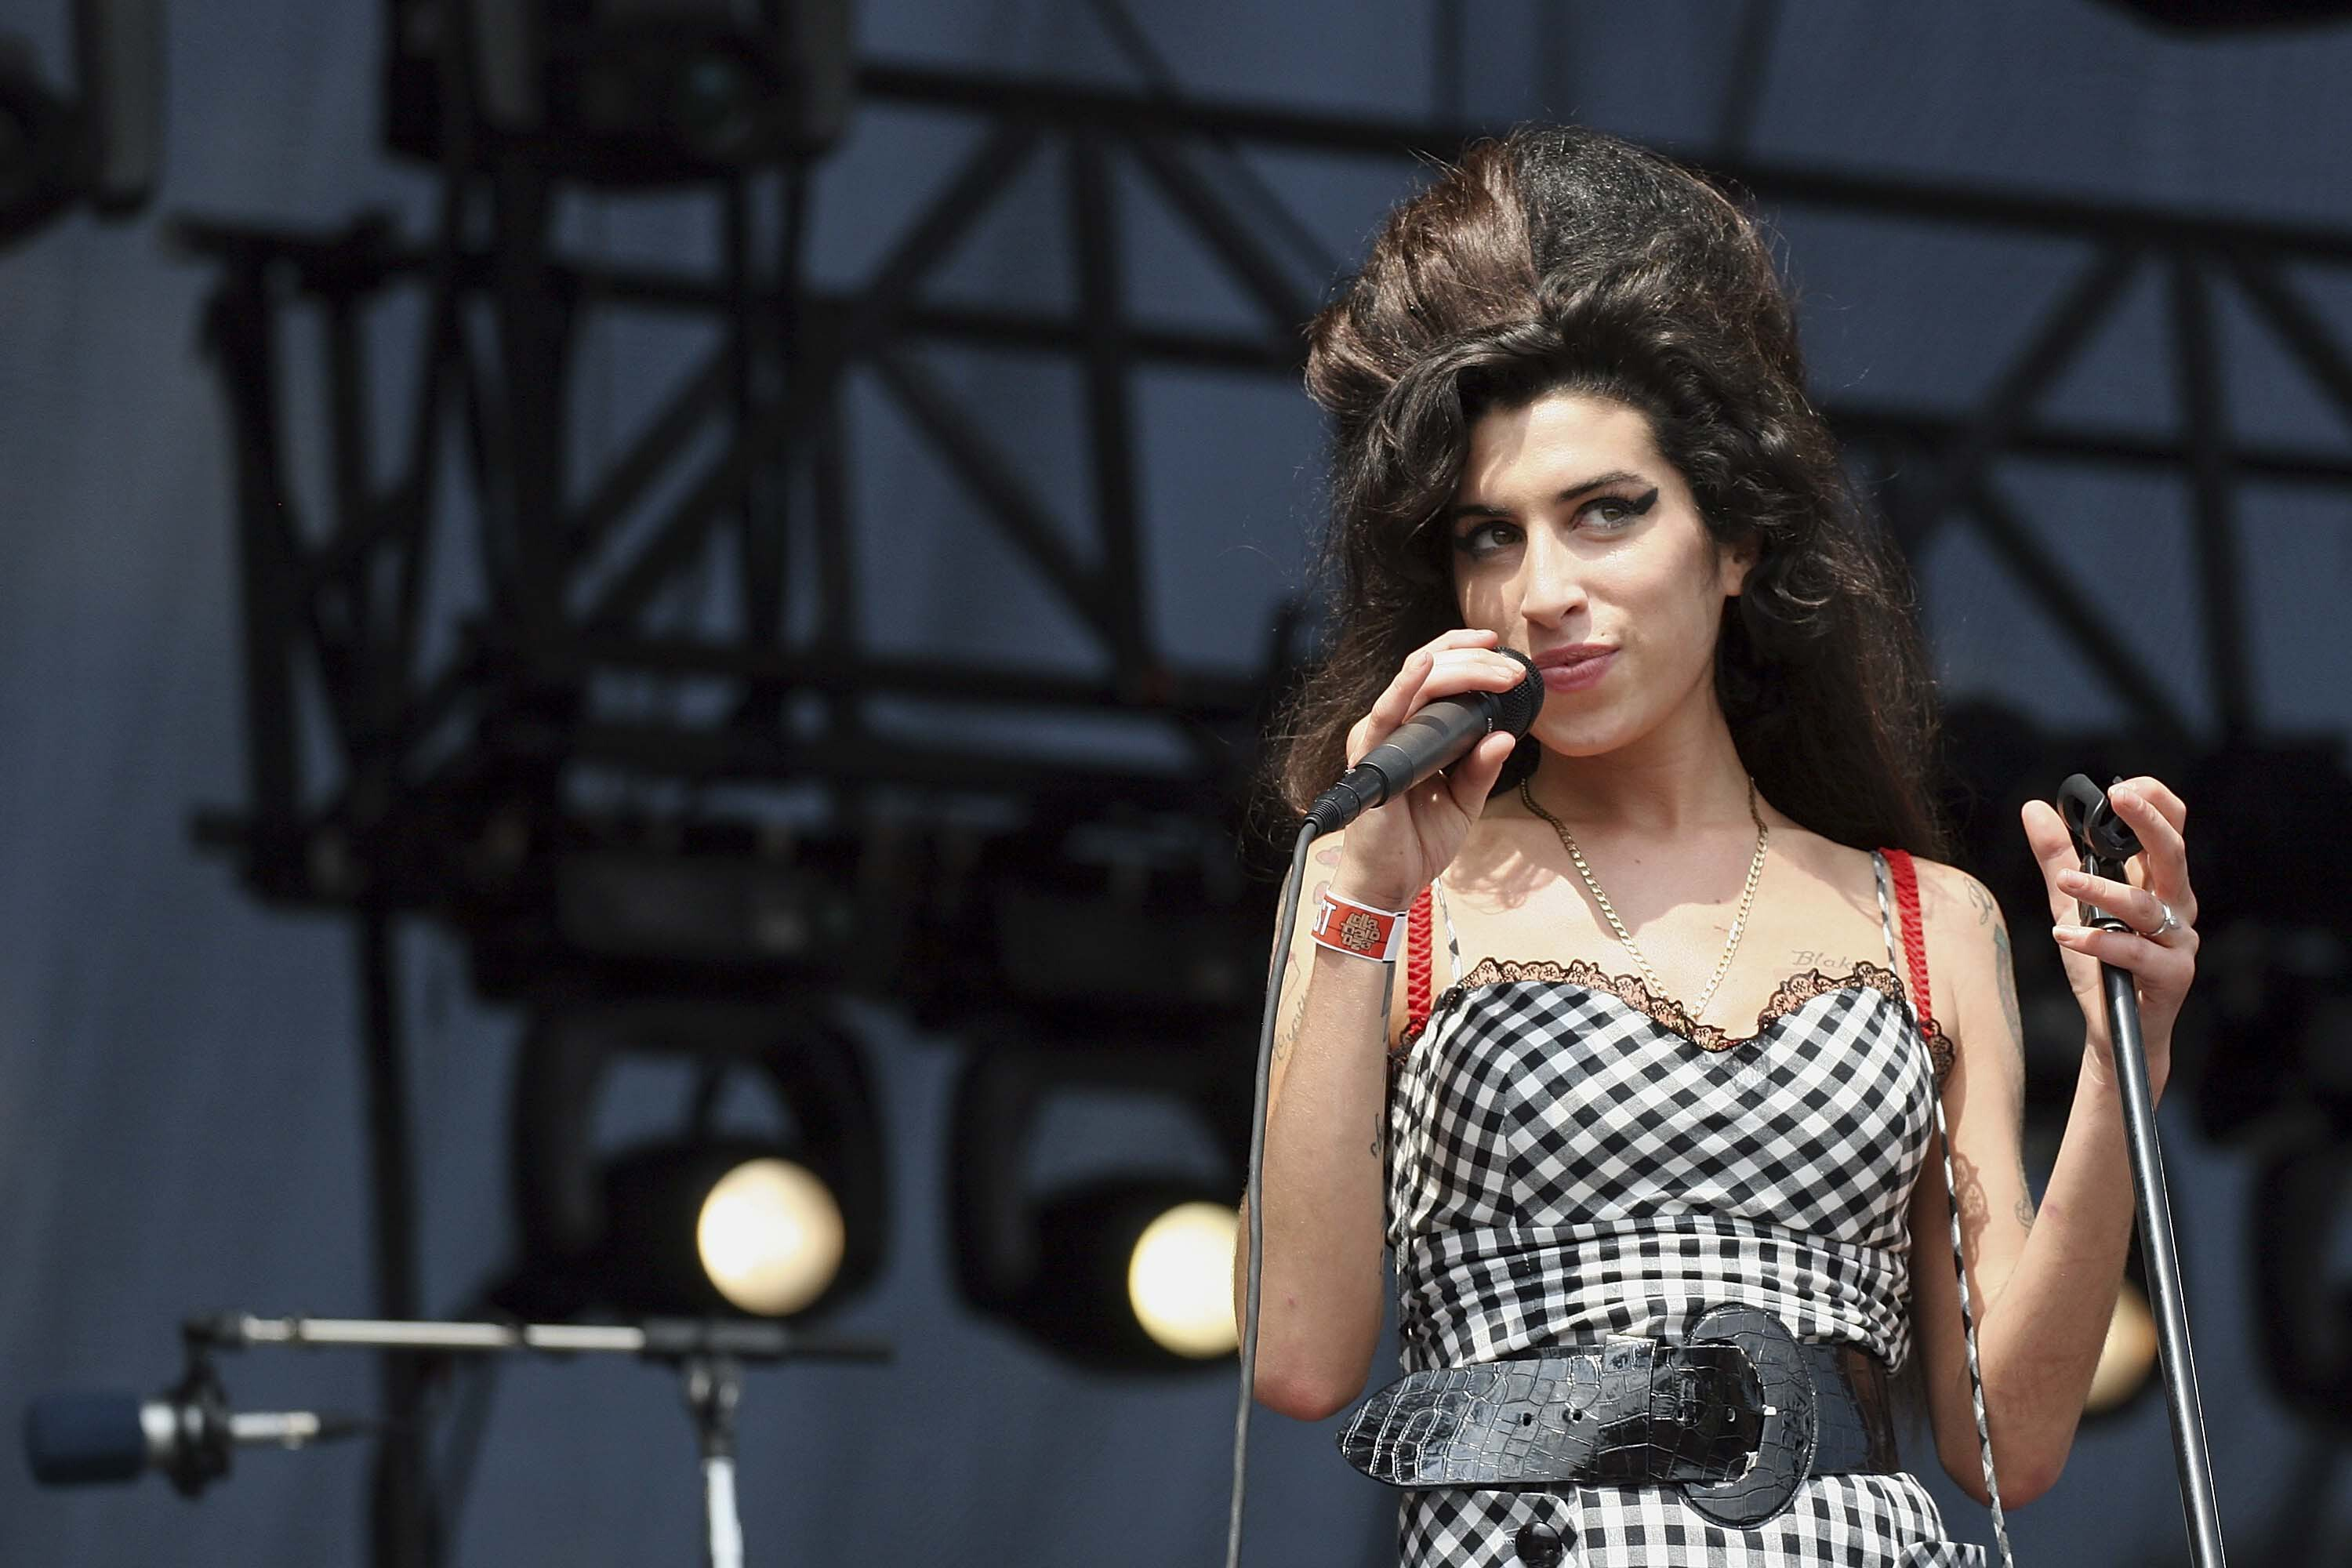 10 years after her death, Amy Winehouse is still so important